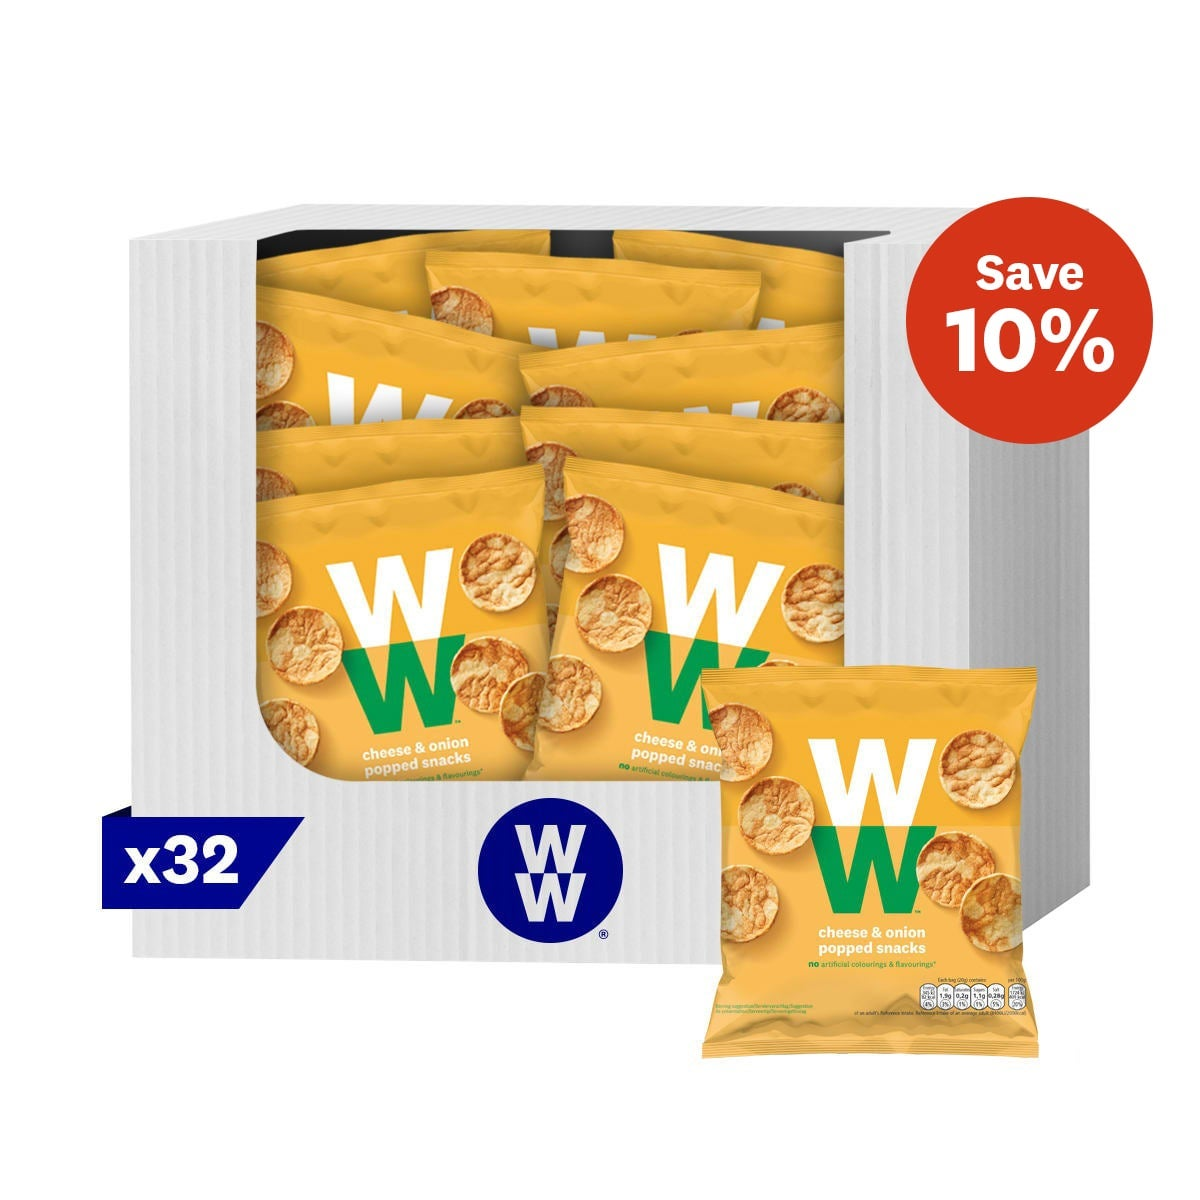 Box of 32, classic flavour tangy cheese and sweet onion savoury snacks, soya and chickpea, baked not fried, 2 SmartPoints values per bag, suitable for vegetarians